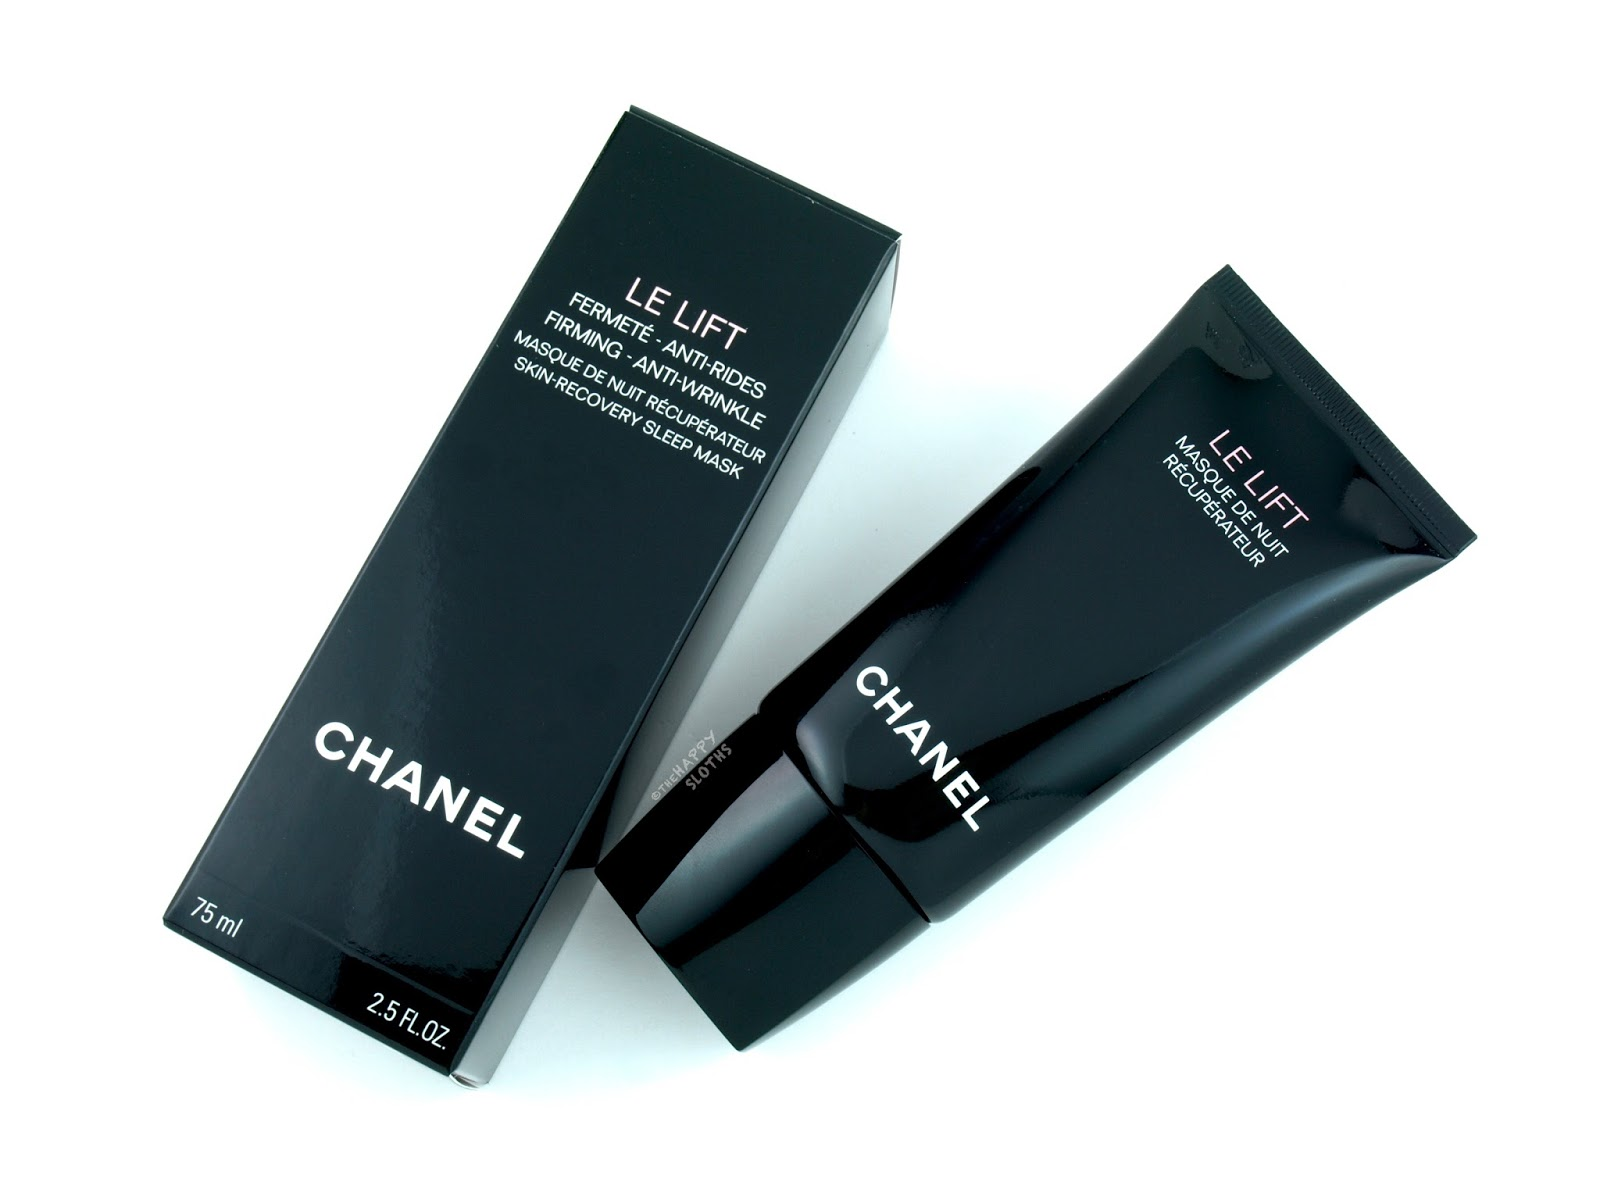 Chanel   Le Lift Skin-Recovery Sleep Mask: Review